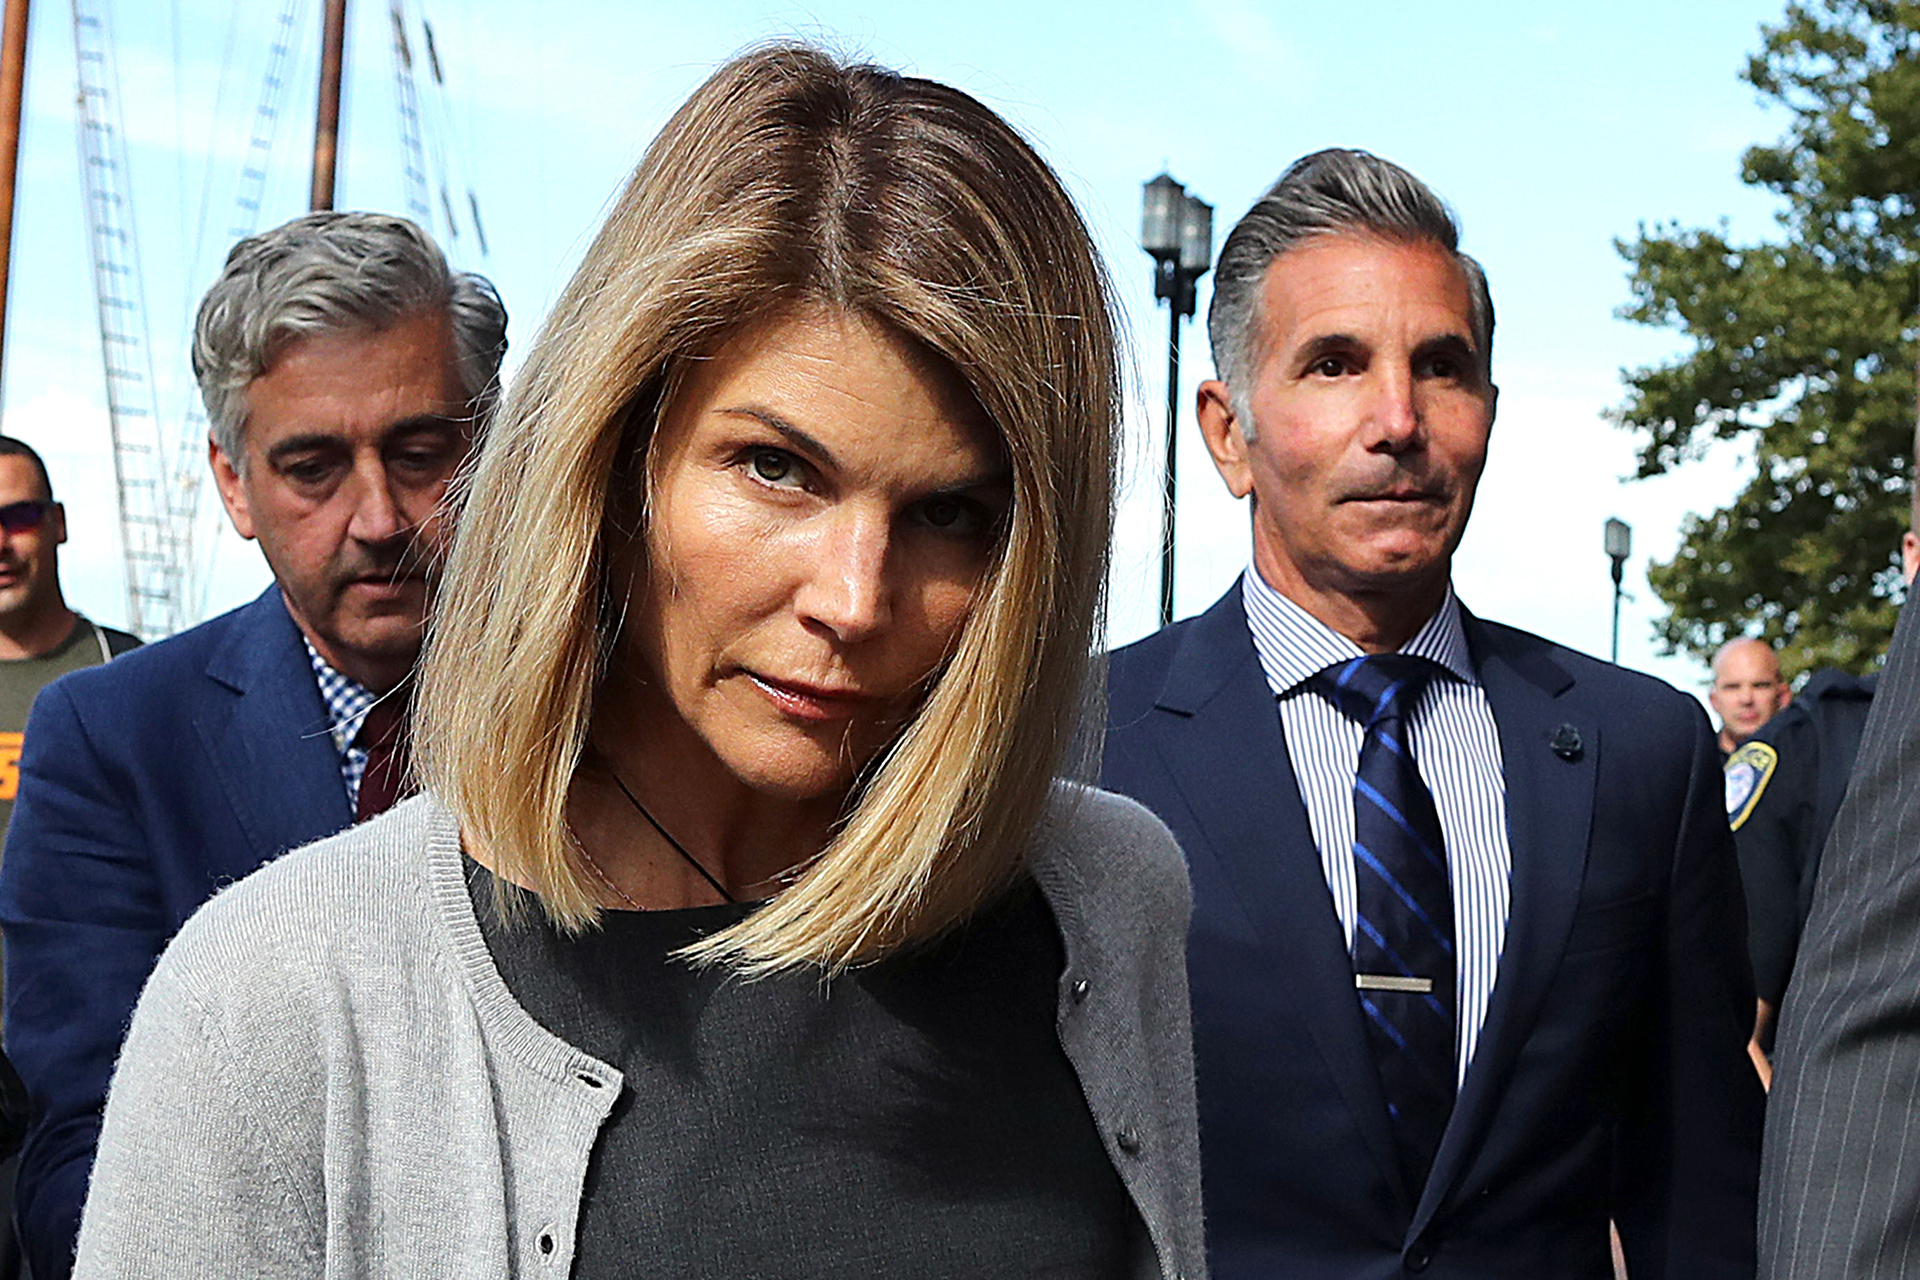 People Now: All the Details on Lori Loughlin and Mossimo Giannulli's Guilty Plea in College Admissions Case - Watch the Full Episode